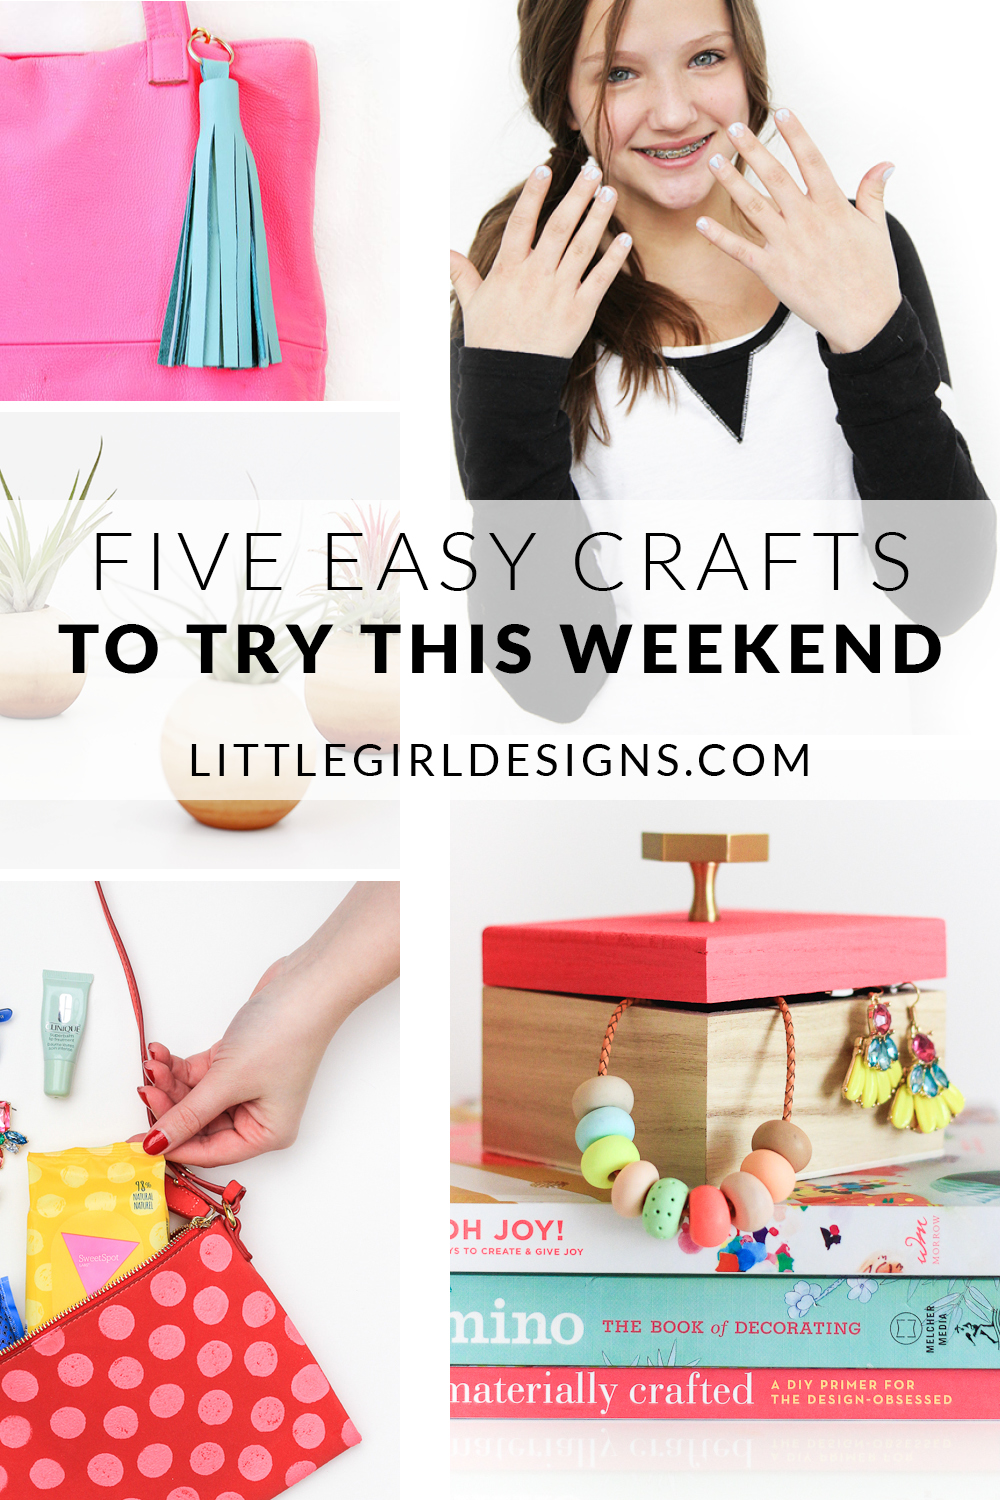 Check out these five easy (and super cute!) crafts that you can make this weekend. These are perfect #2030make projects and would also make great gifts (for yourself or your BFF)! :)